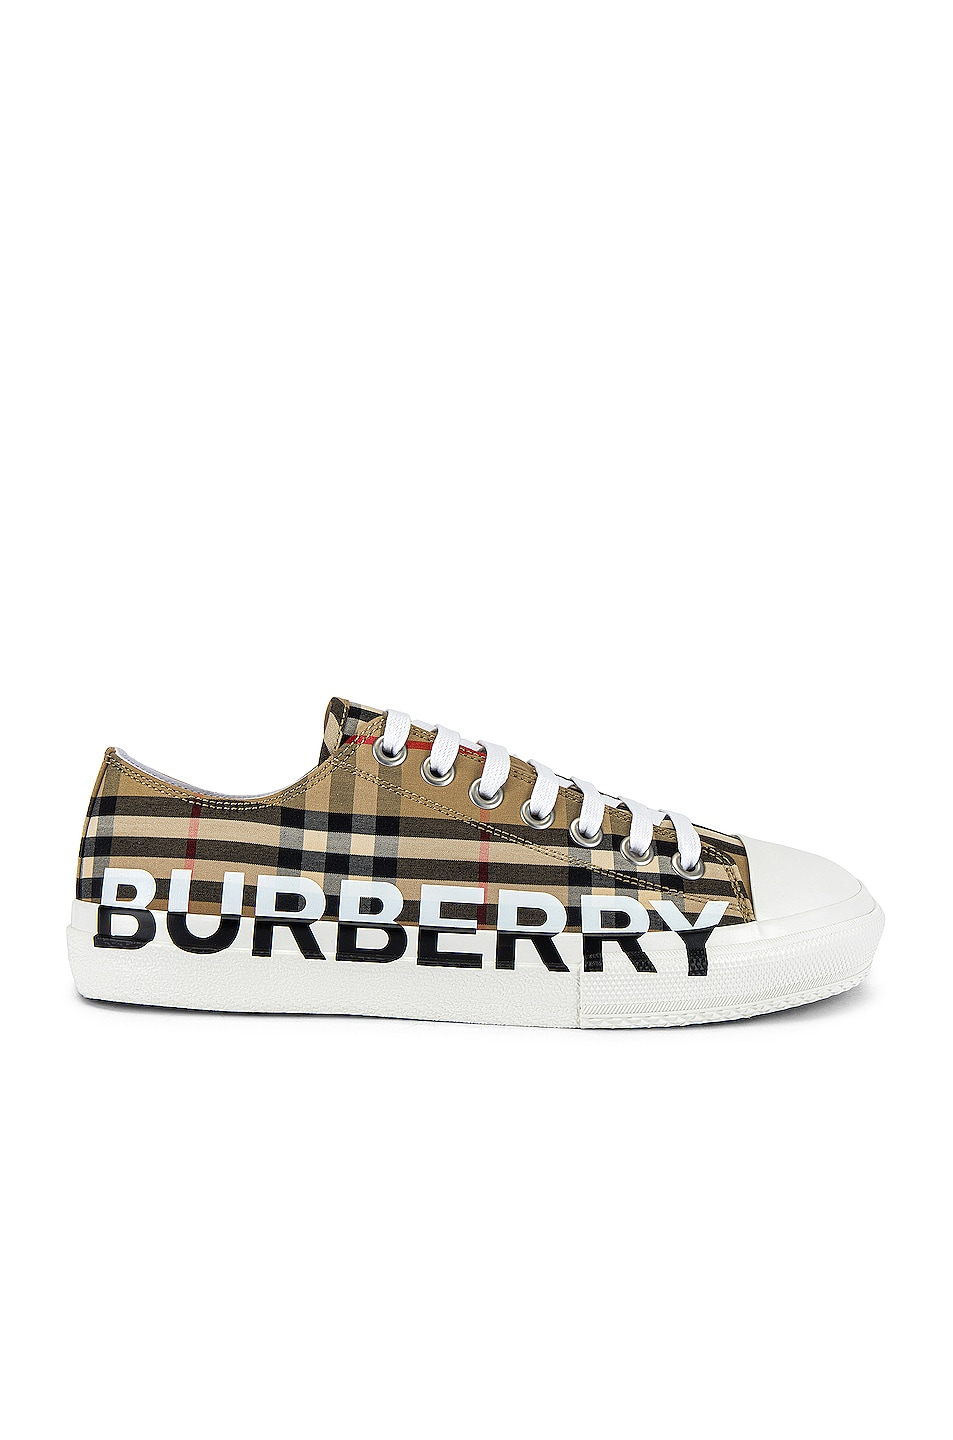 Image 1 of Burberry Larkhall Logo Low Top Sneaker in Archive Beige